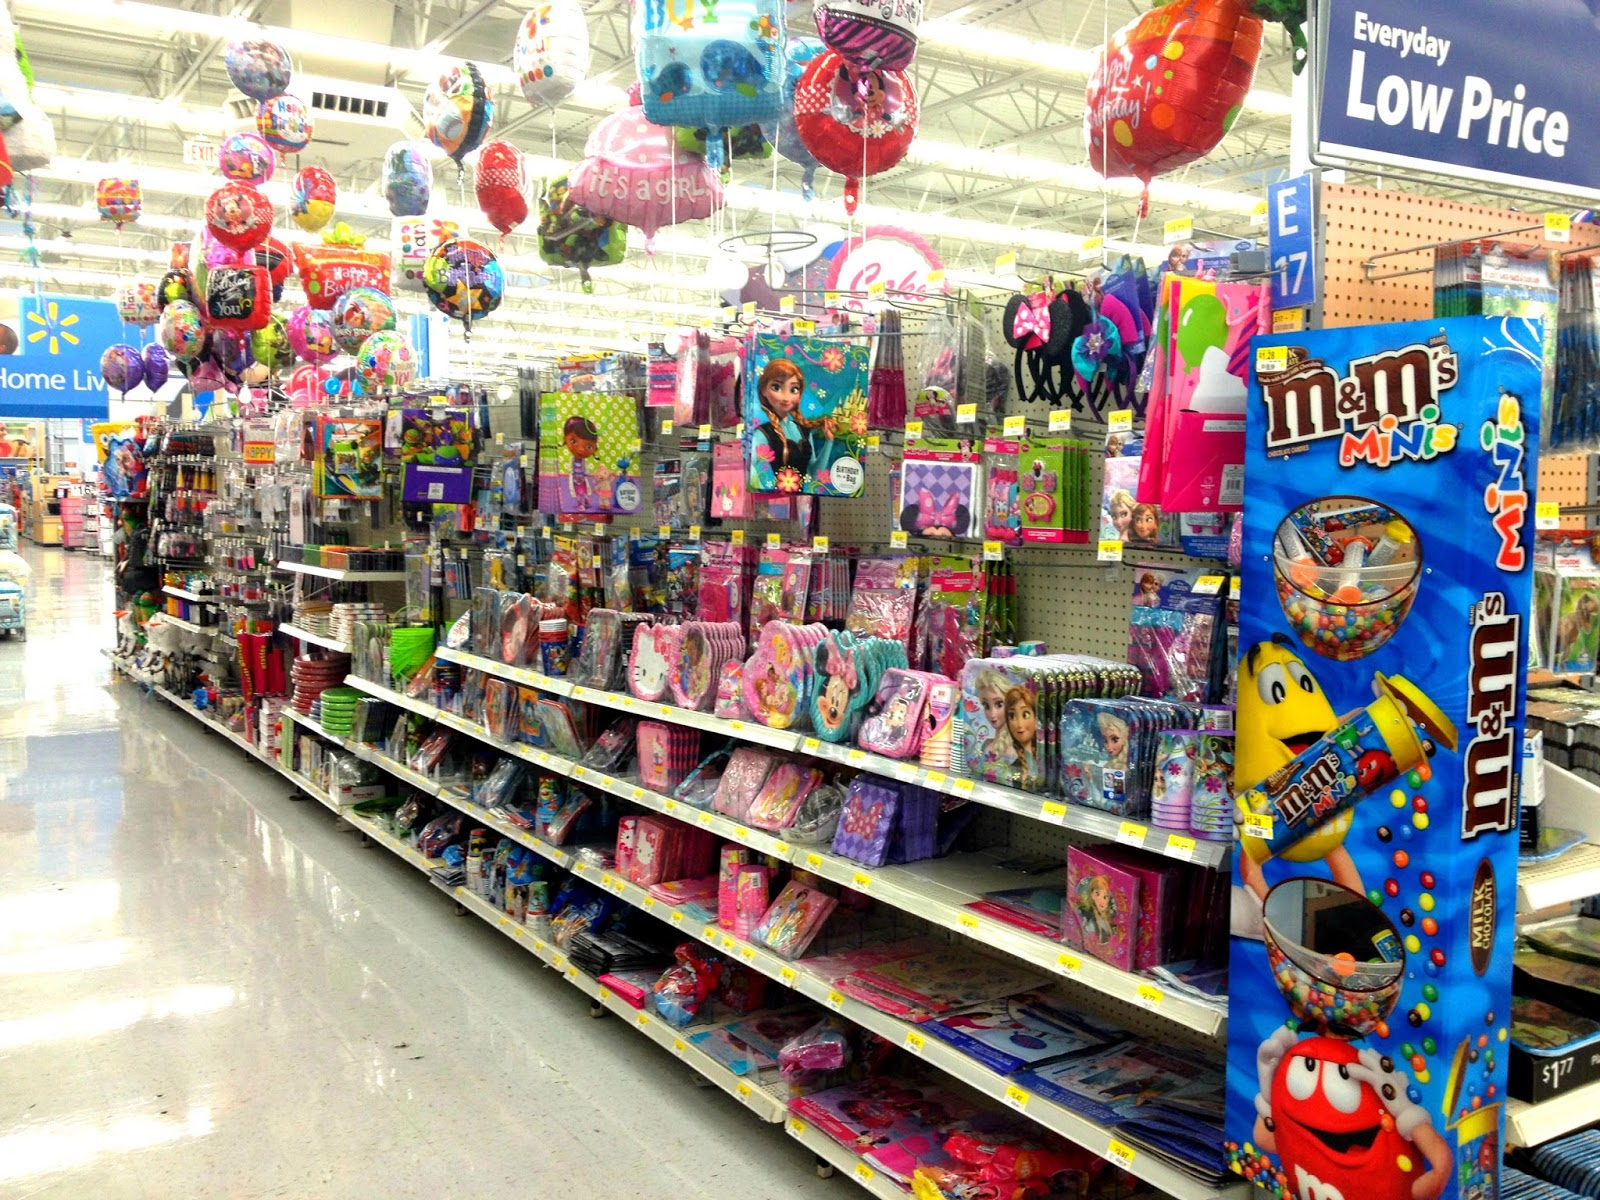 Does walmart blow up balloons? – kgb answers.